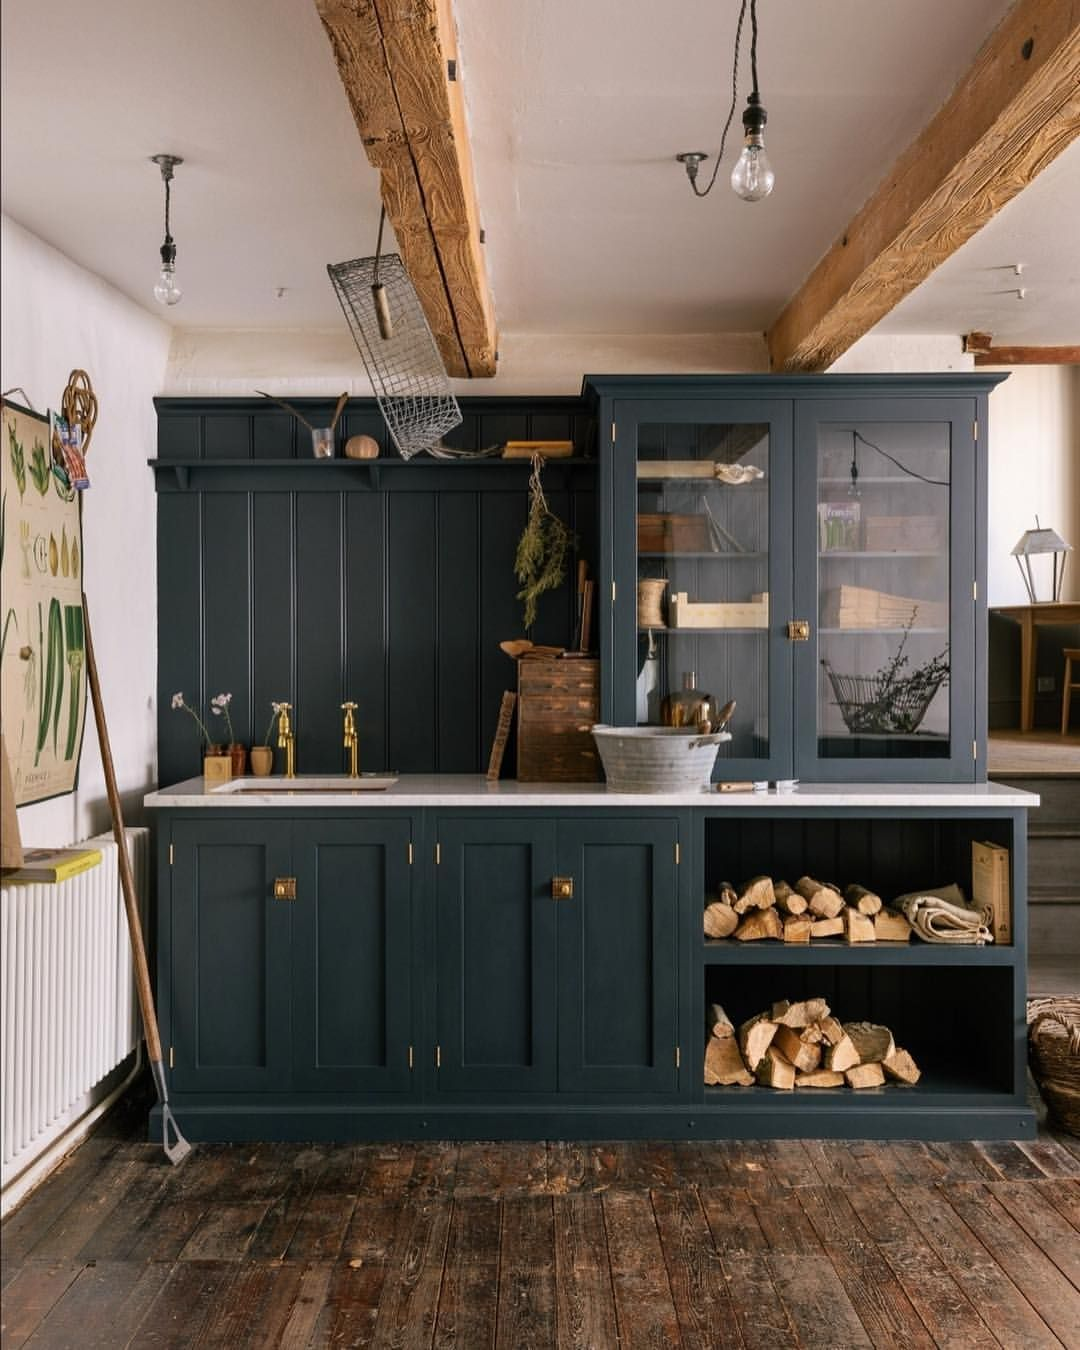 Farmhouse Kitchen With Dark Cabinets: Farmhouse Kitchen Cabinets, Farmhouse Style Kitchen, Devol Kitchens